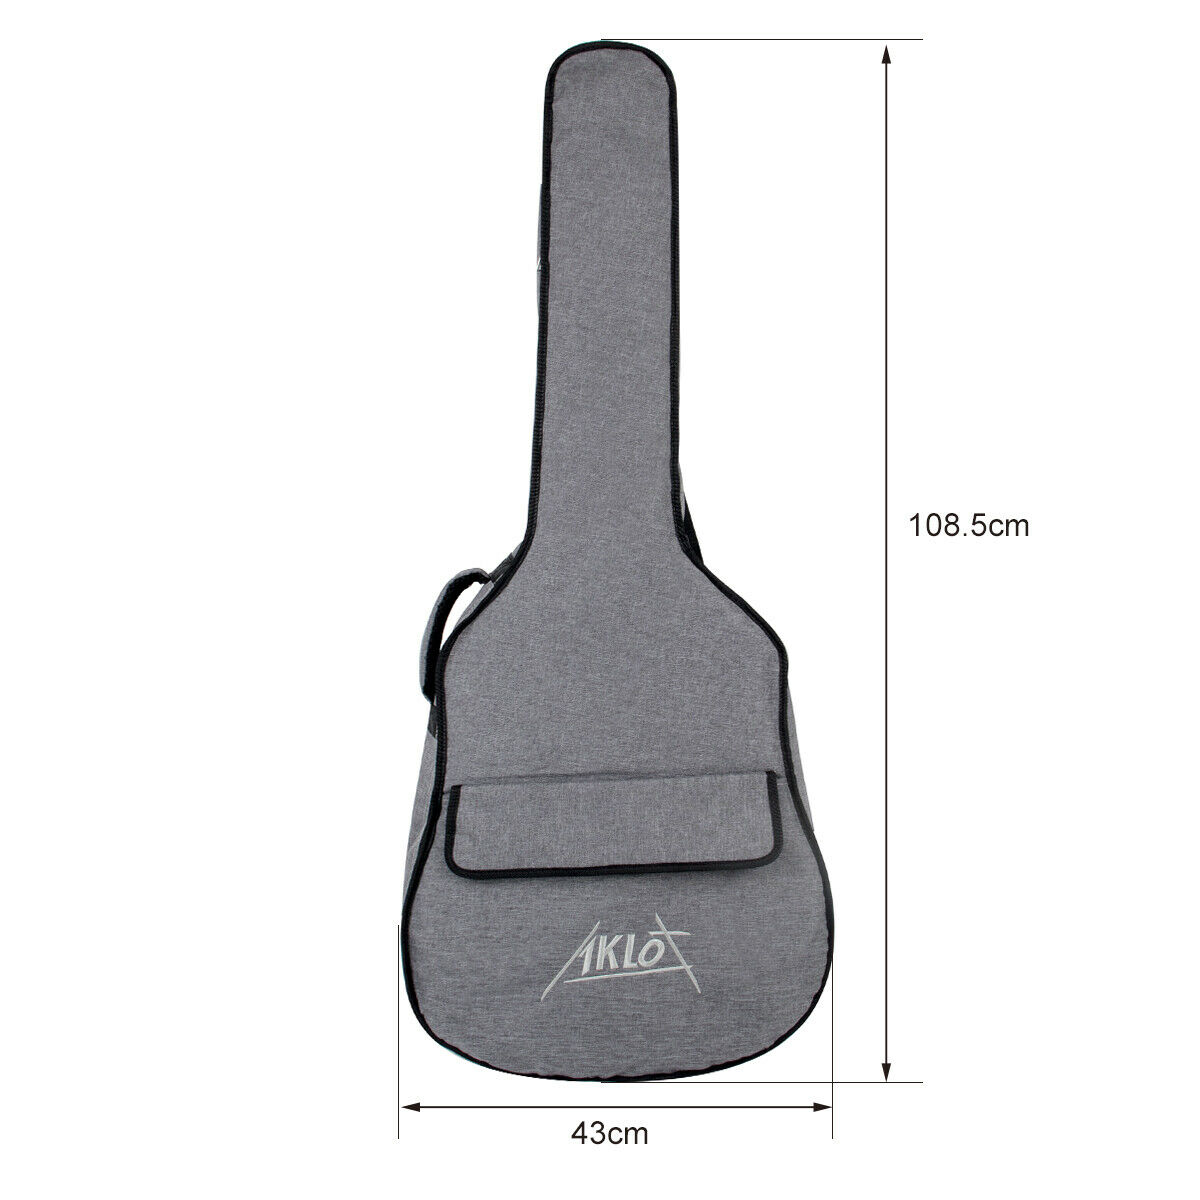 Aklot Guitar Gig Bag Padded Backpack for 41 inch Acoustic Classical Guitar Gray